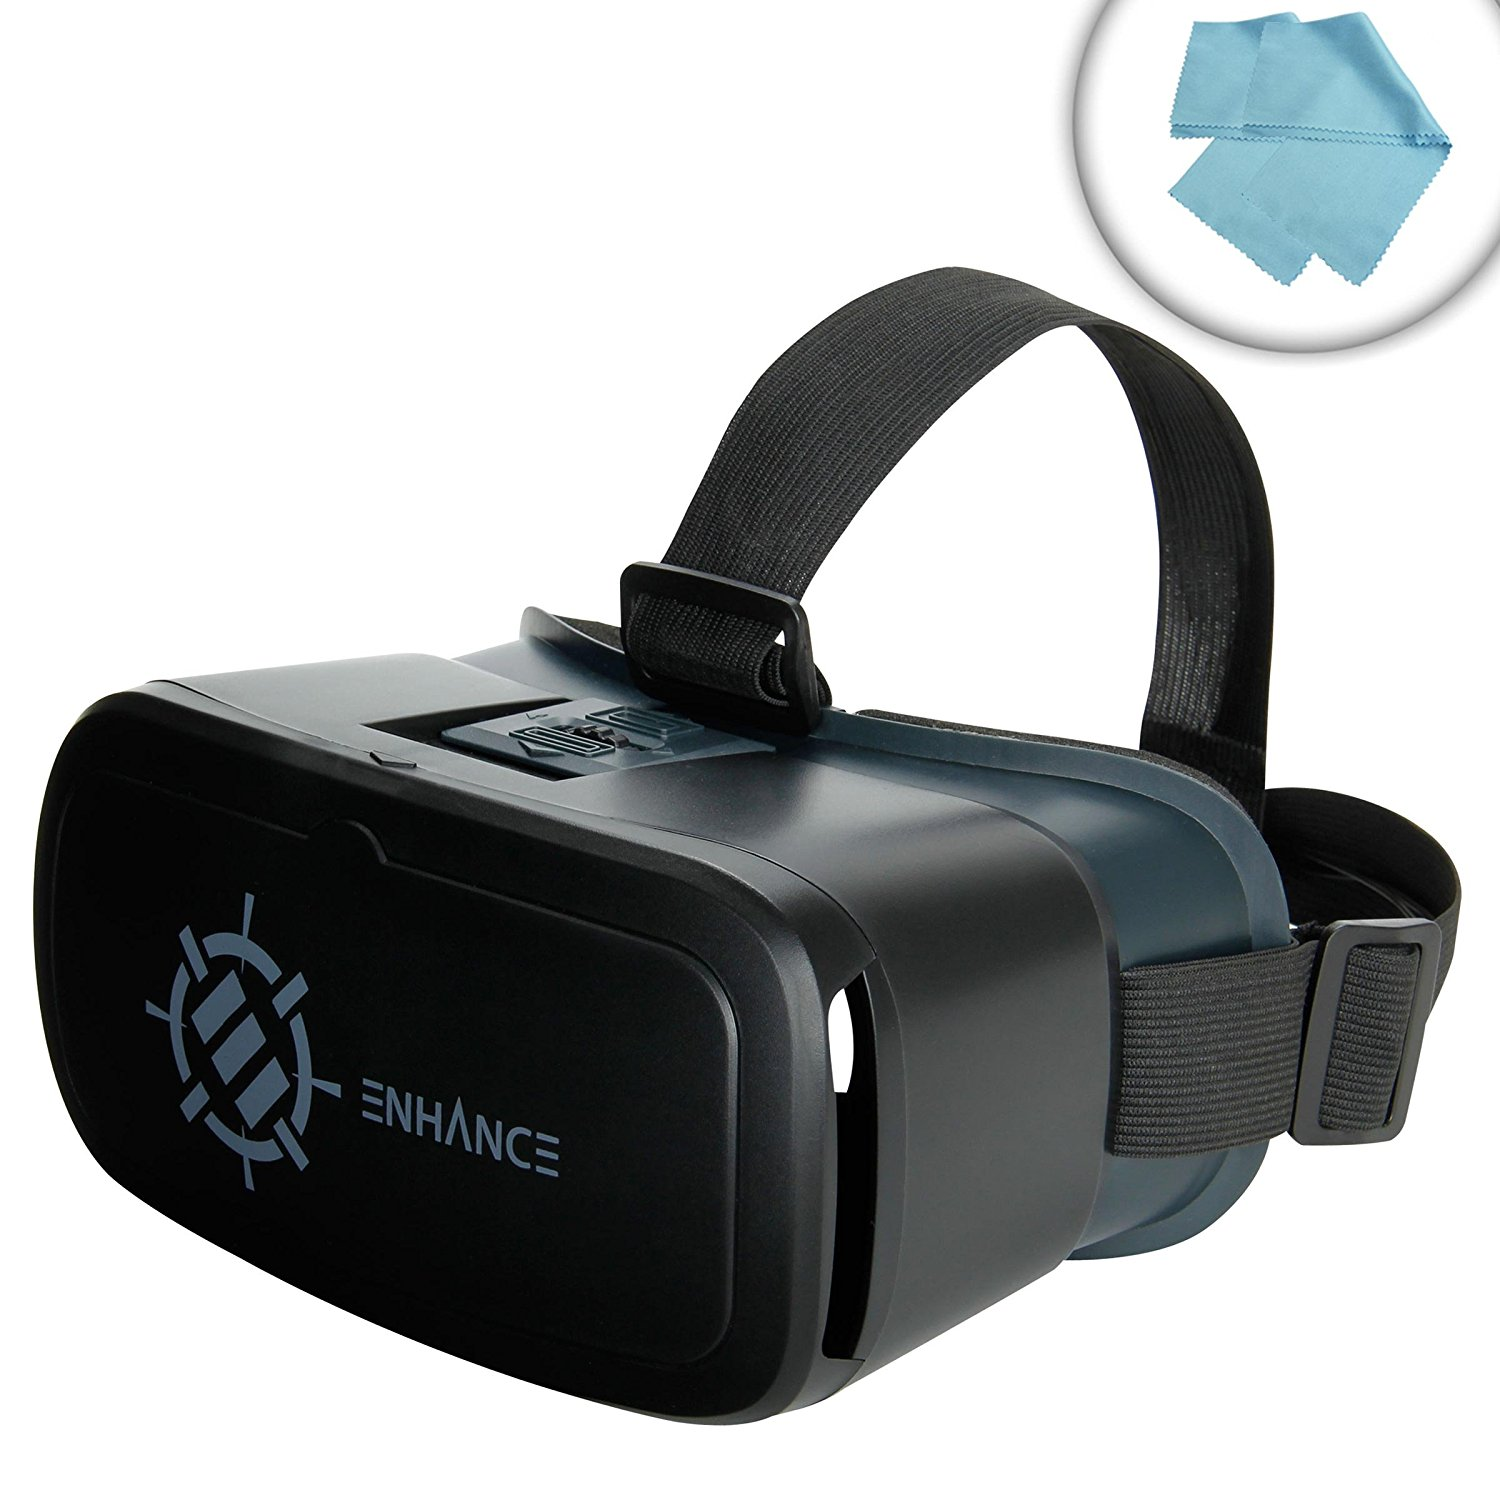 Buy Enhance Virtual Reality Headset Glasses For 3d Vr Apps And Split Screen Videos Works With Apple Iphone 6s Plus Samsung Note 5 Htc One M9 Motorola Droid Maxx